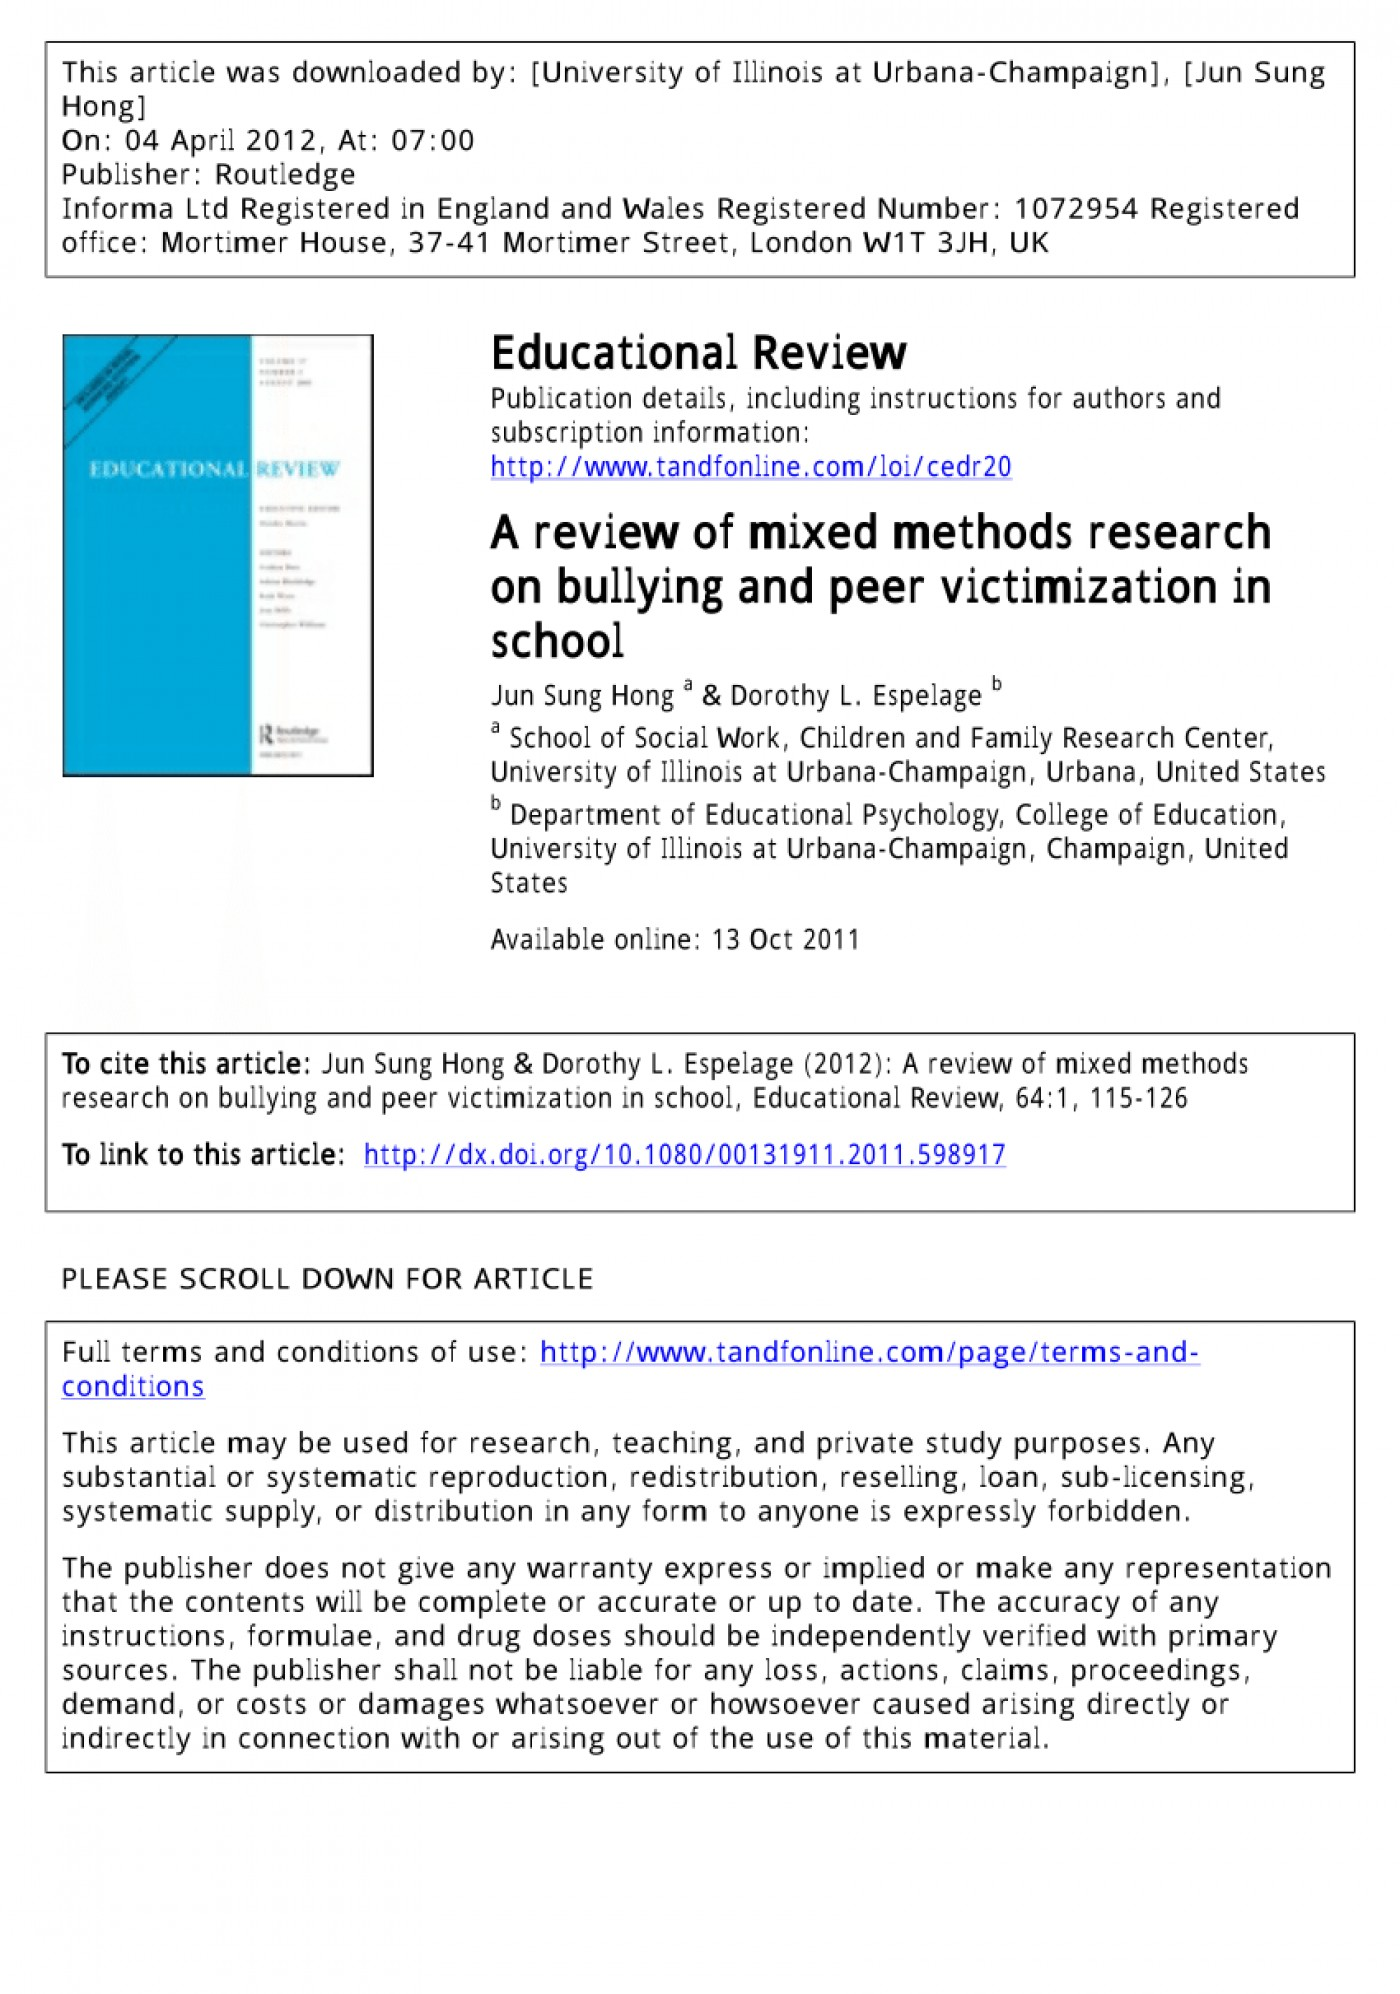 001 Action Research Study On Bullying Largepreview Surprising 1400